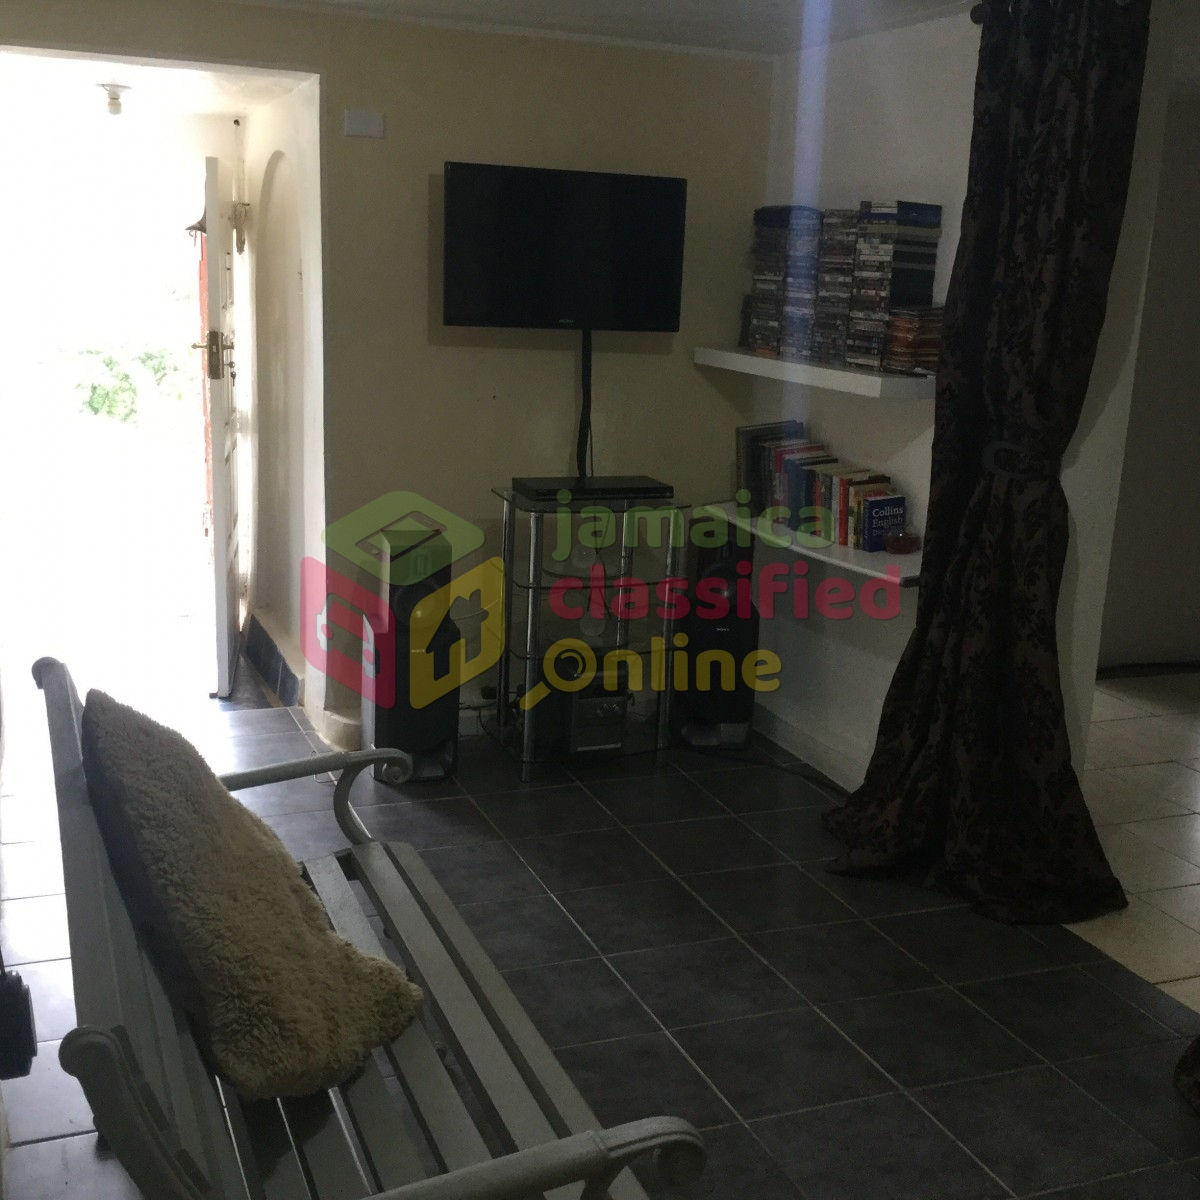 Studio Apartment For Rent Zetland: 1 Bedroom Self Contained Studio Apartment For Rent In